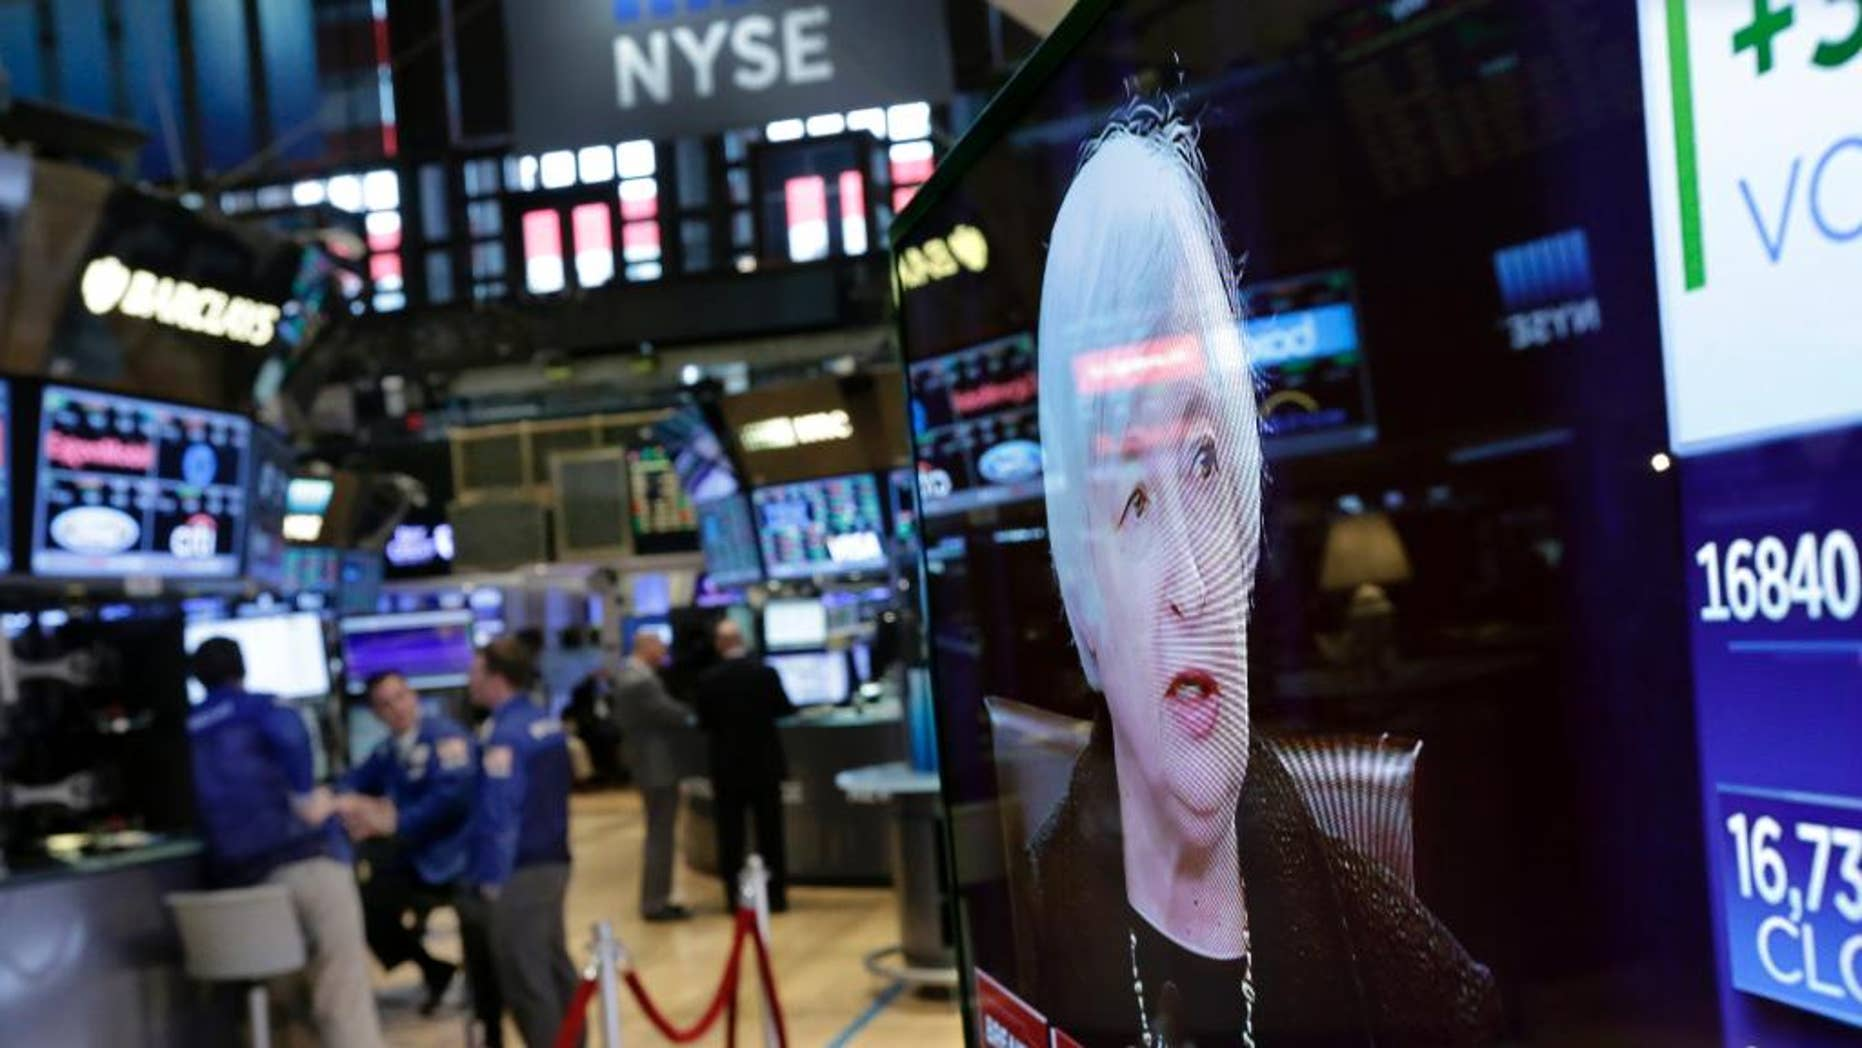 Federal Reserve Chair Janet Yellen's news conference is shown on a television screen, on the floor of the New York Stock Exchange, Thursday, Sept. 17, 2015.